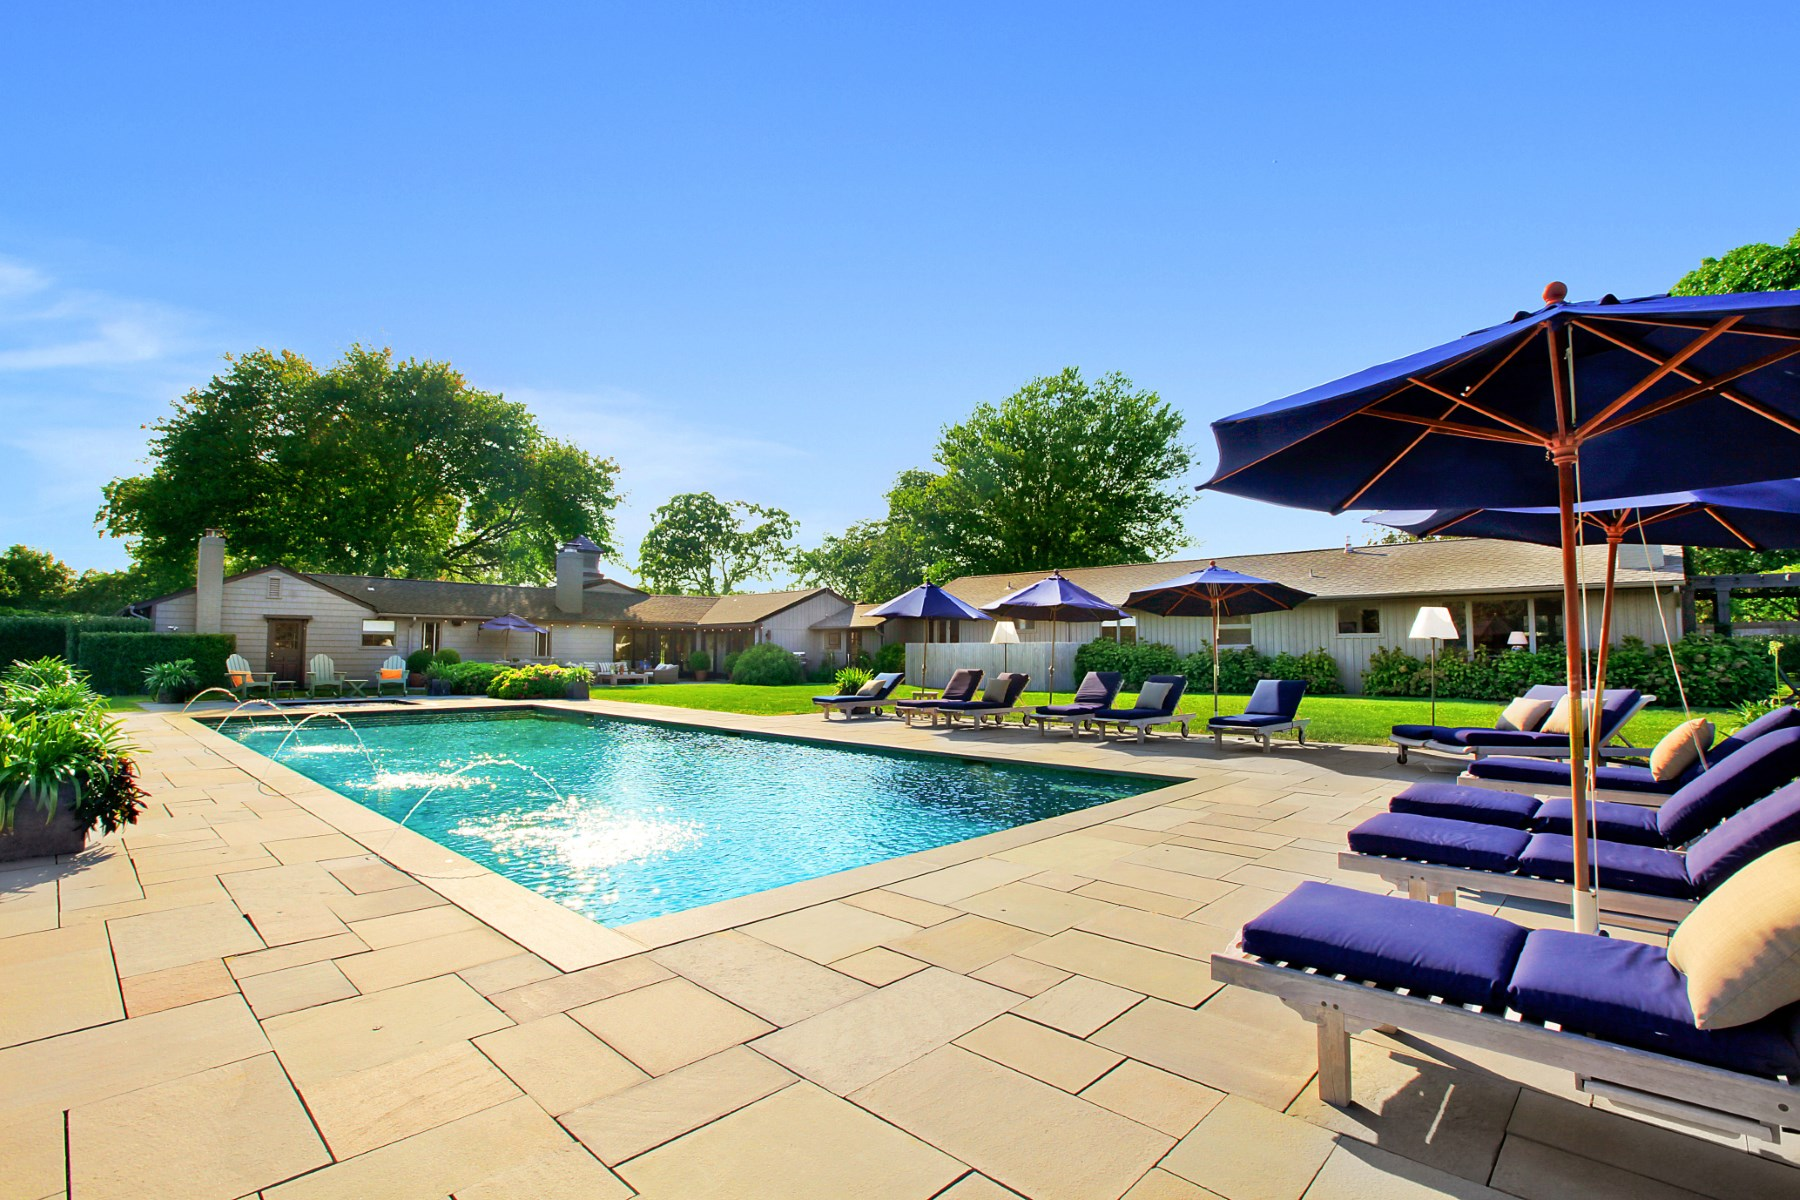 Single Family Home for Rent at Chic Carriage House, Majestic Vistas East Hampton, New York 11937 United States